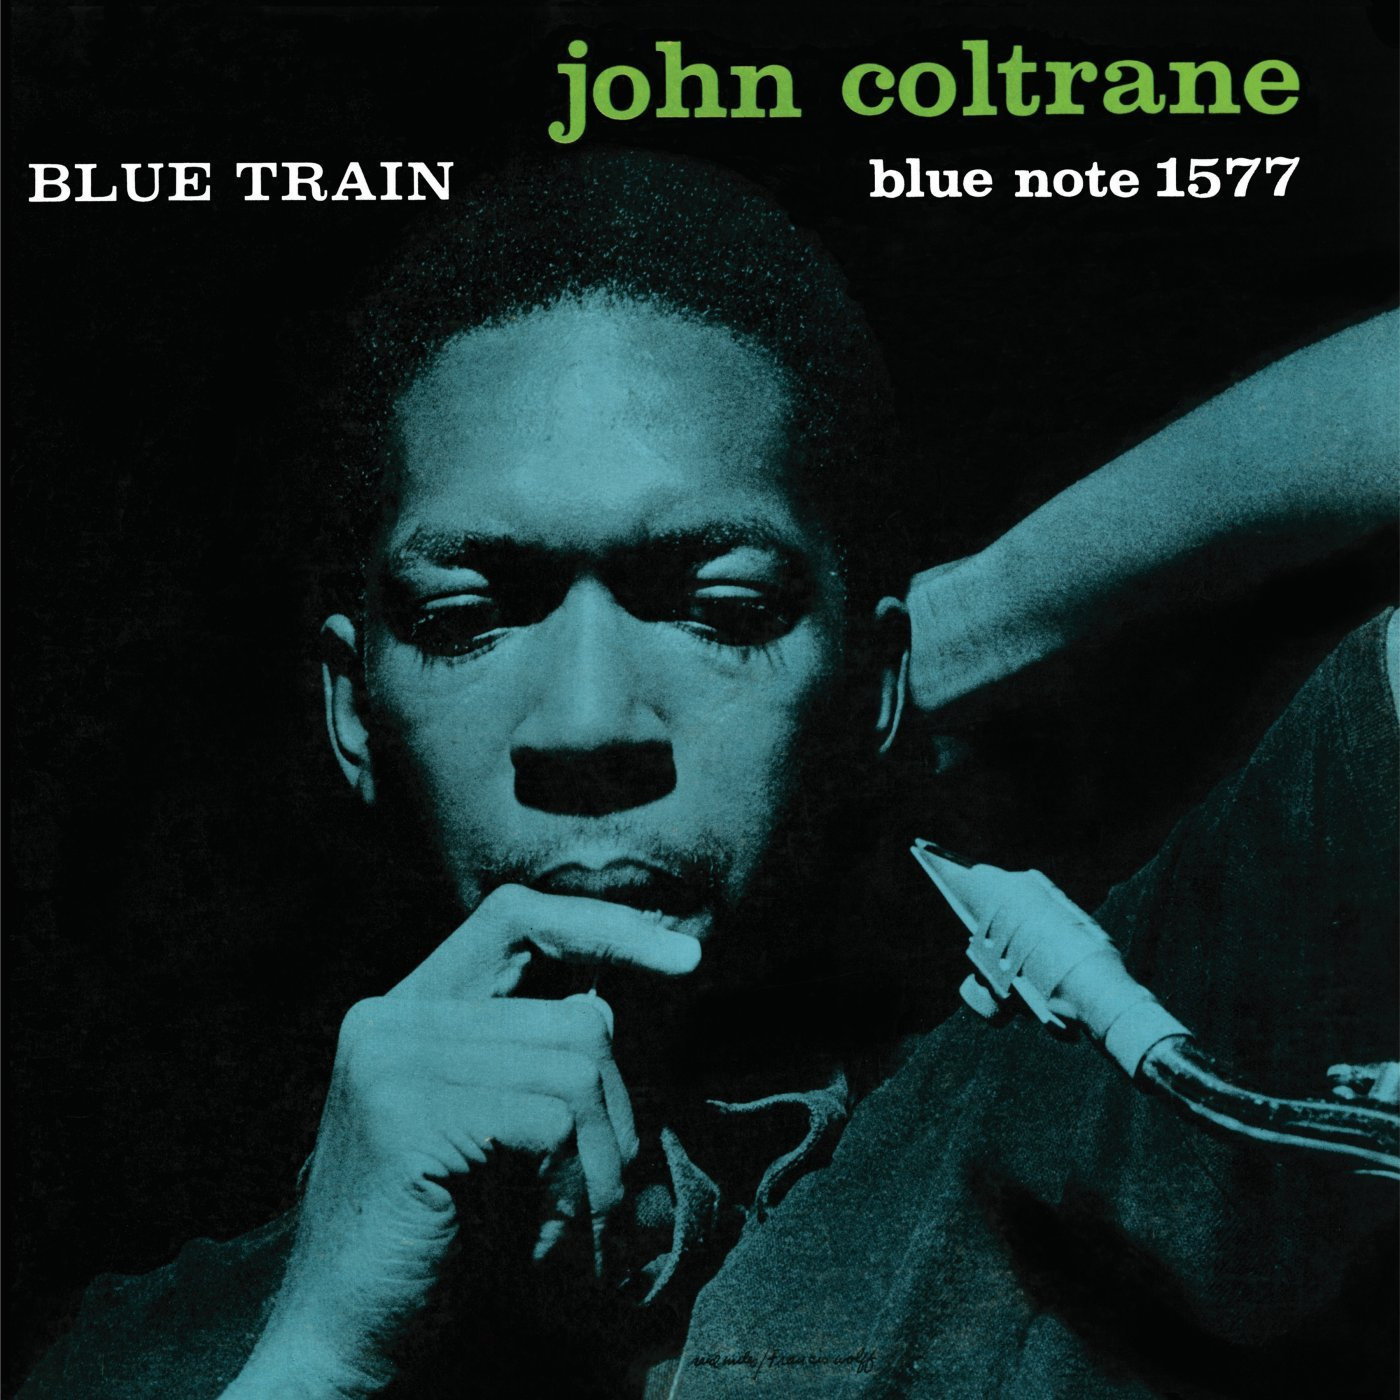 Blue Train by Blue Note